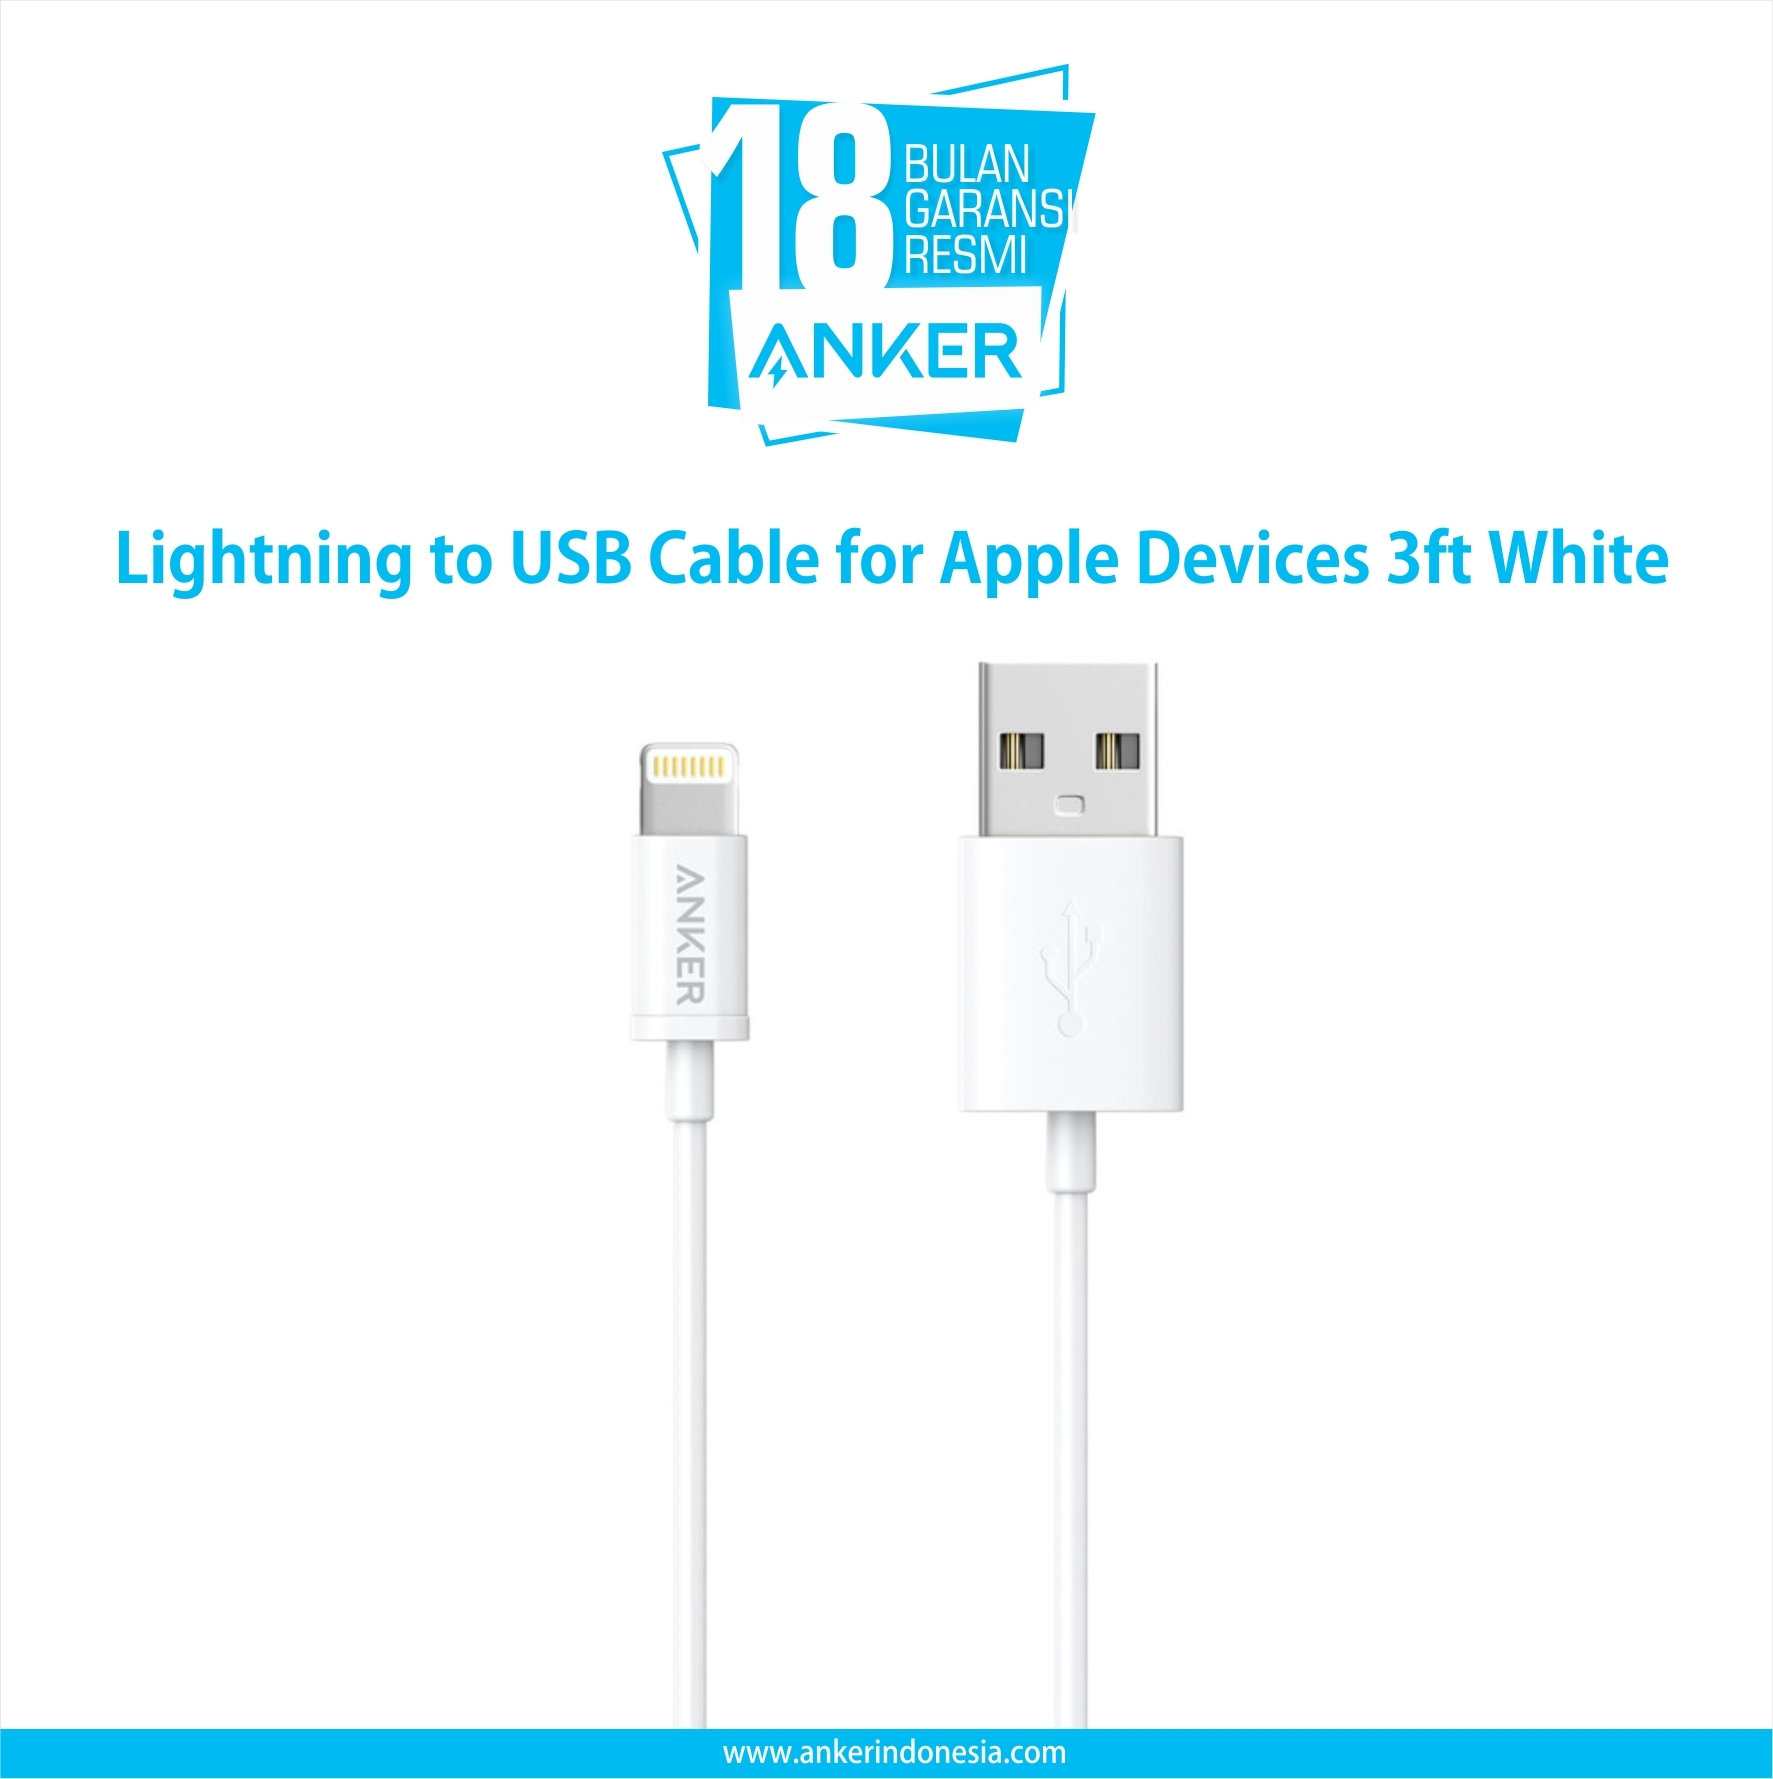 Anker Lightning To Usb Cable For Apple Devices 3ft White A7101h22 - Blanja.com